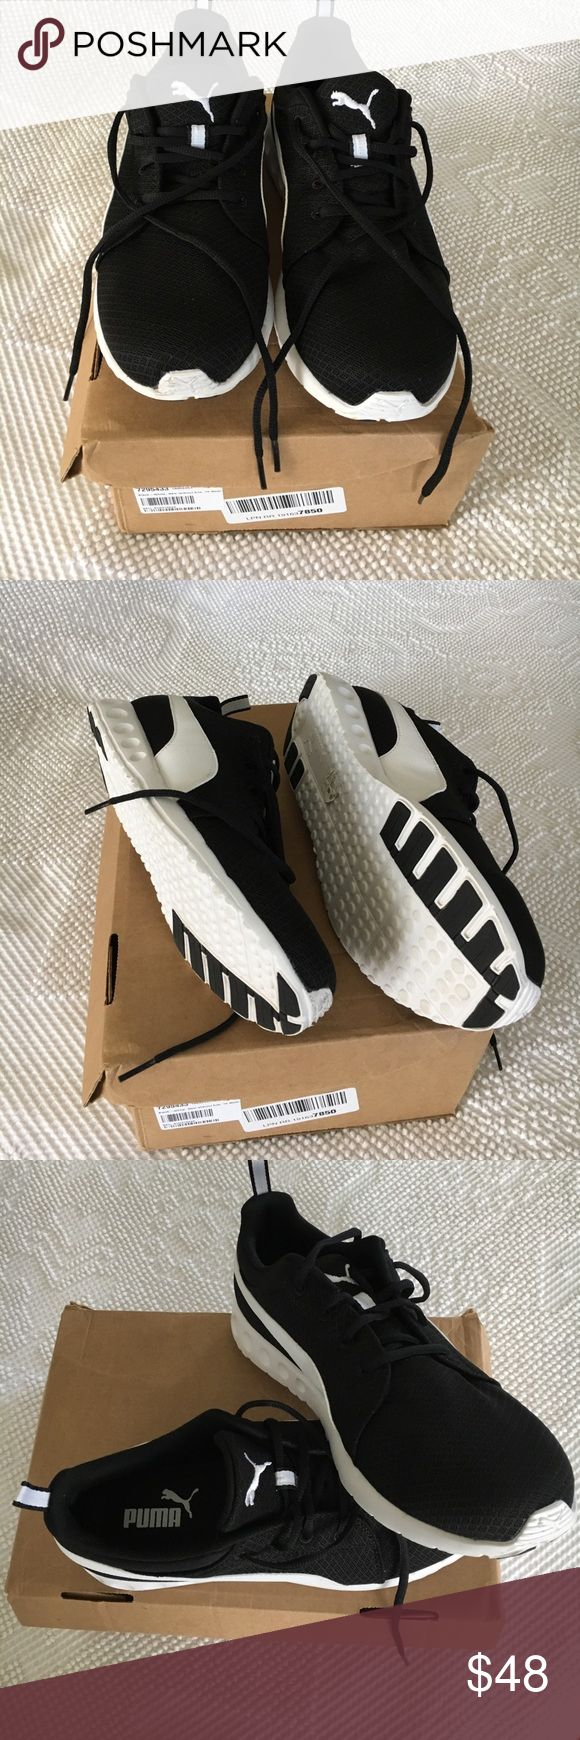 NWOT Puma black and white sneakers Brand-new never worn Puma Black and white sneakers size 10 medium. These were purchased online but they run a little big for me. I am sad because I really wanted them! Puma Shoes Sneakers